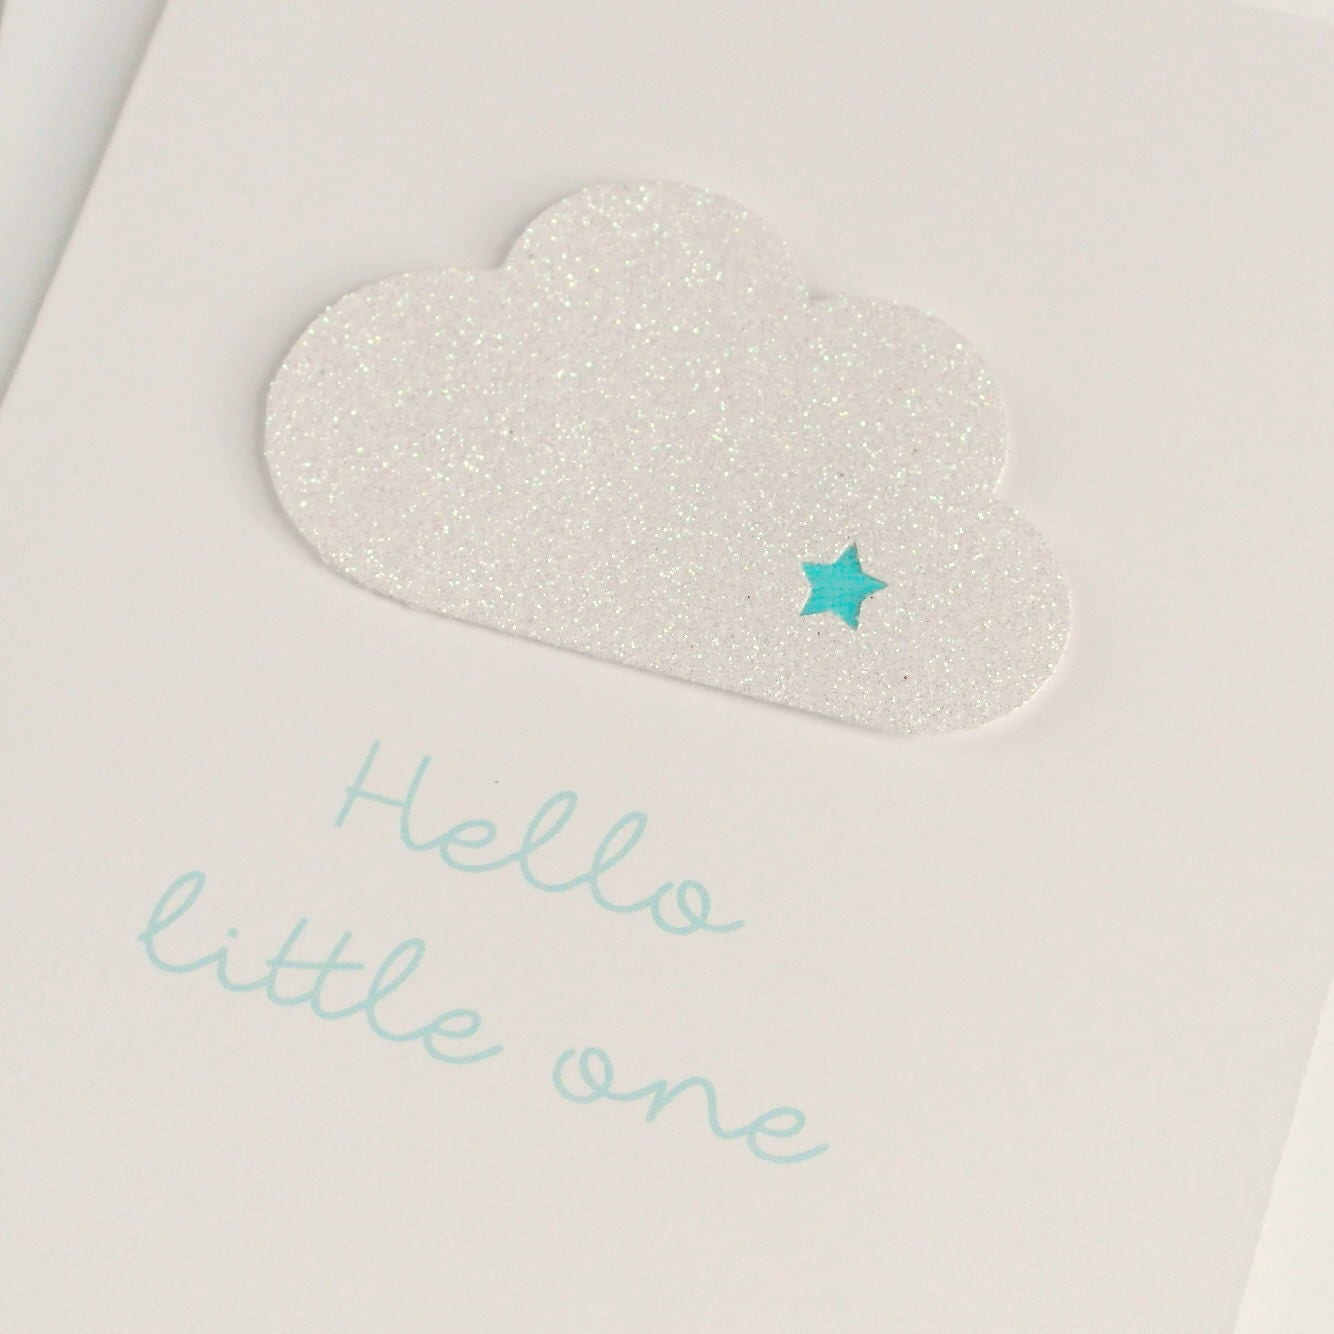 New baby cards uk baby shower card pregnancy announcement new baby cards uk baby shower card pregnancy announcement card kristyandbryce Gallery